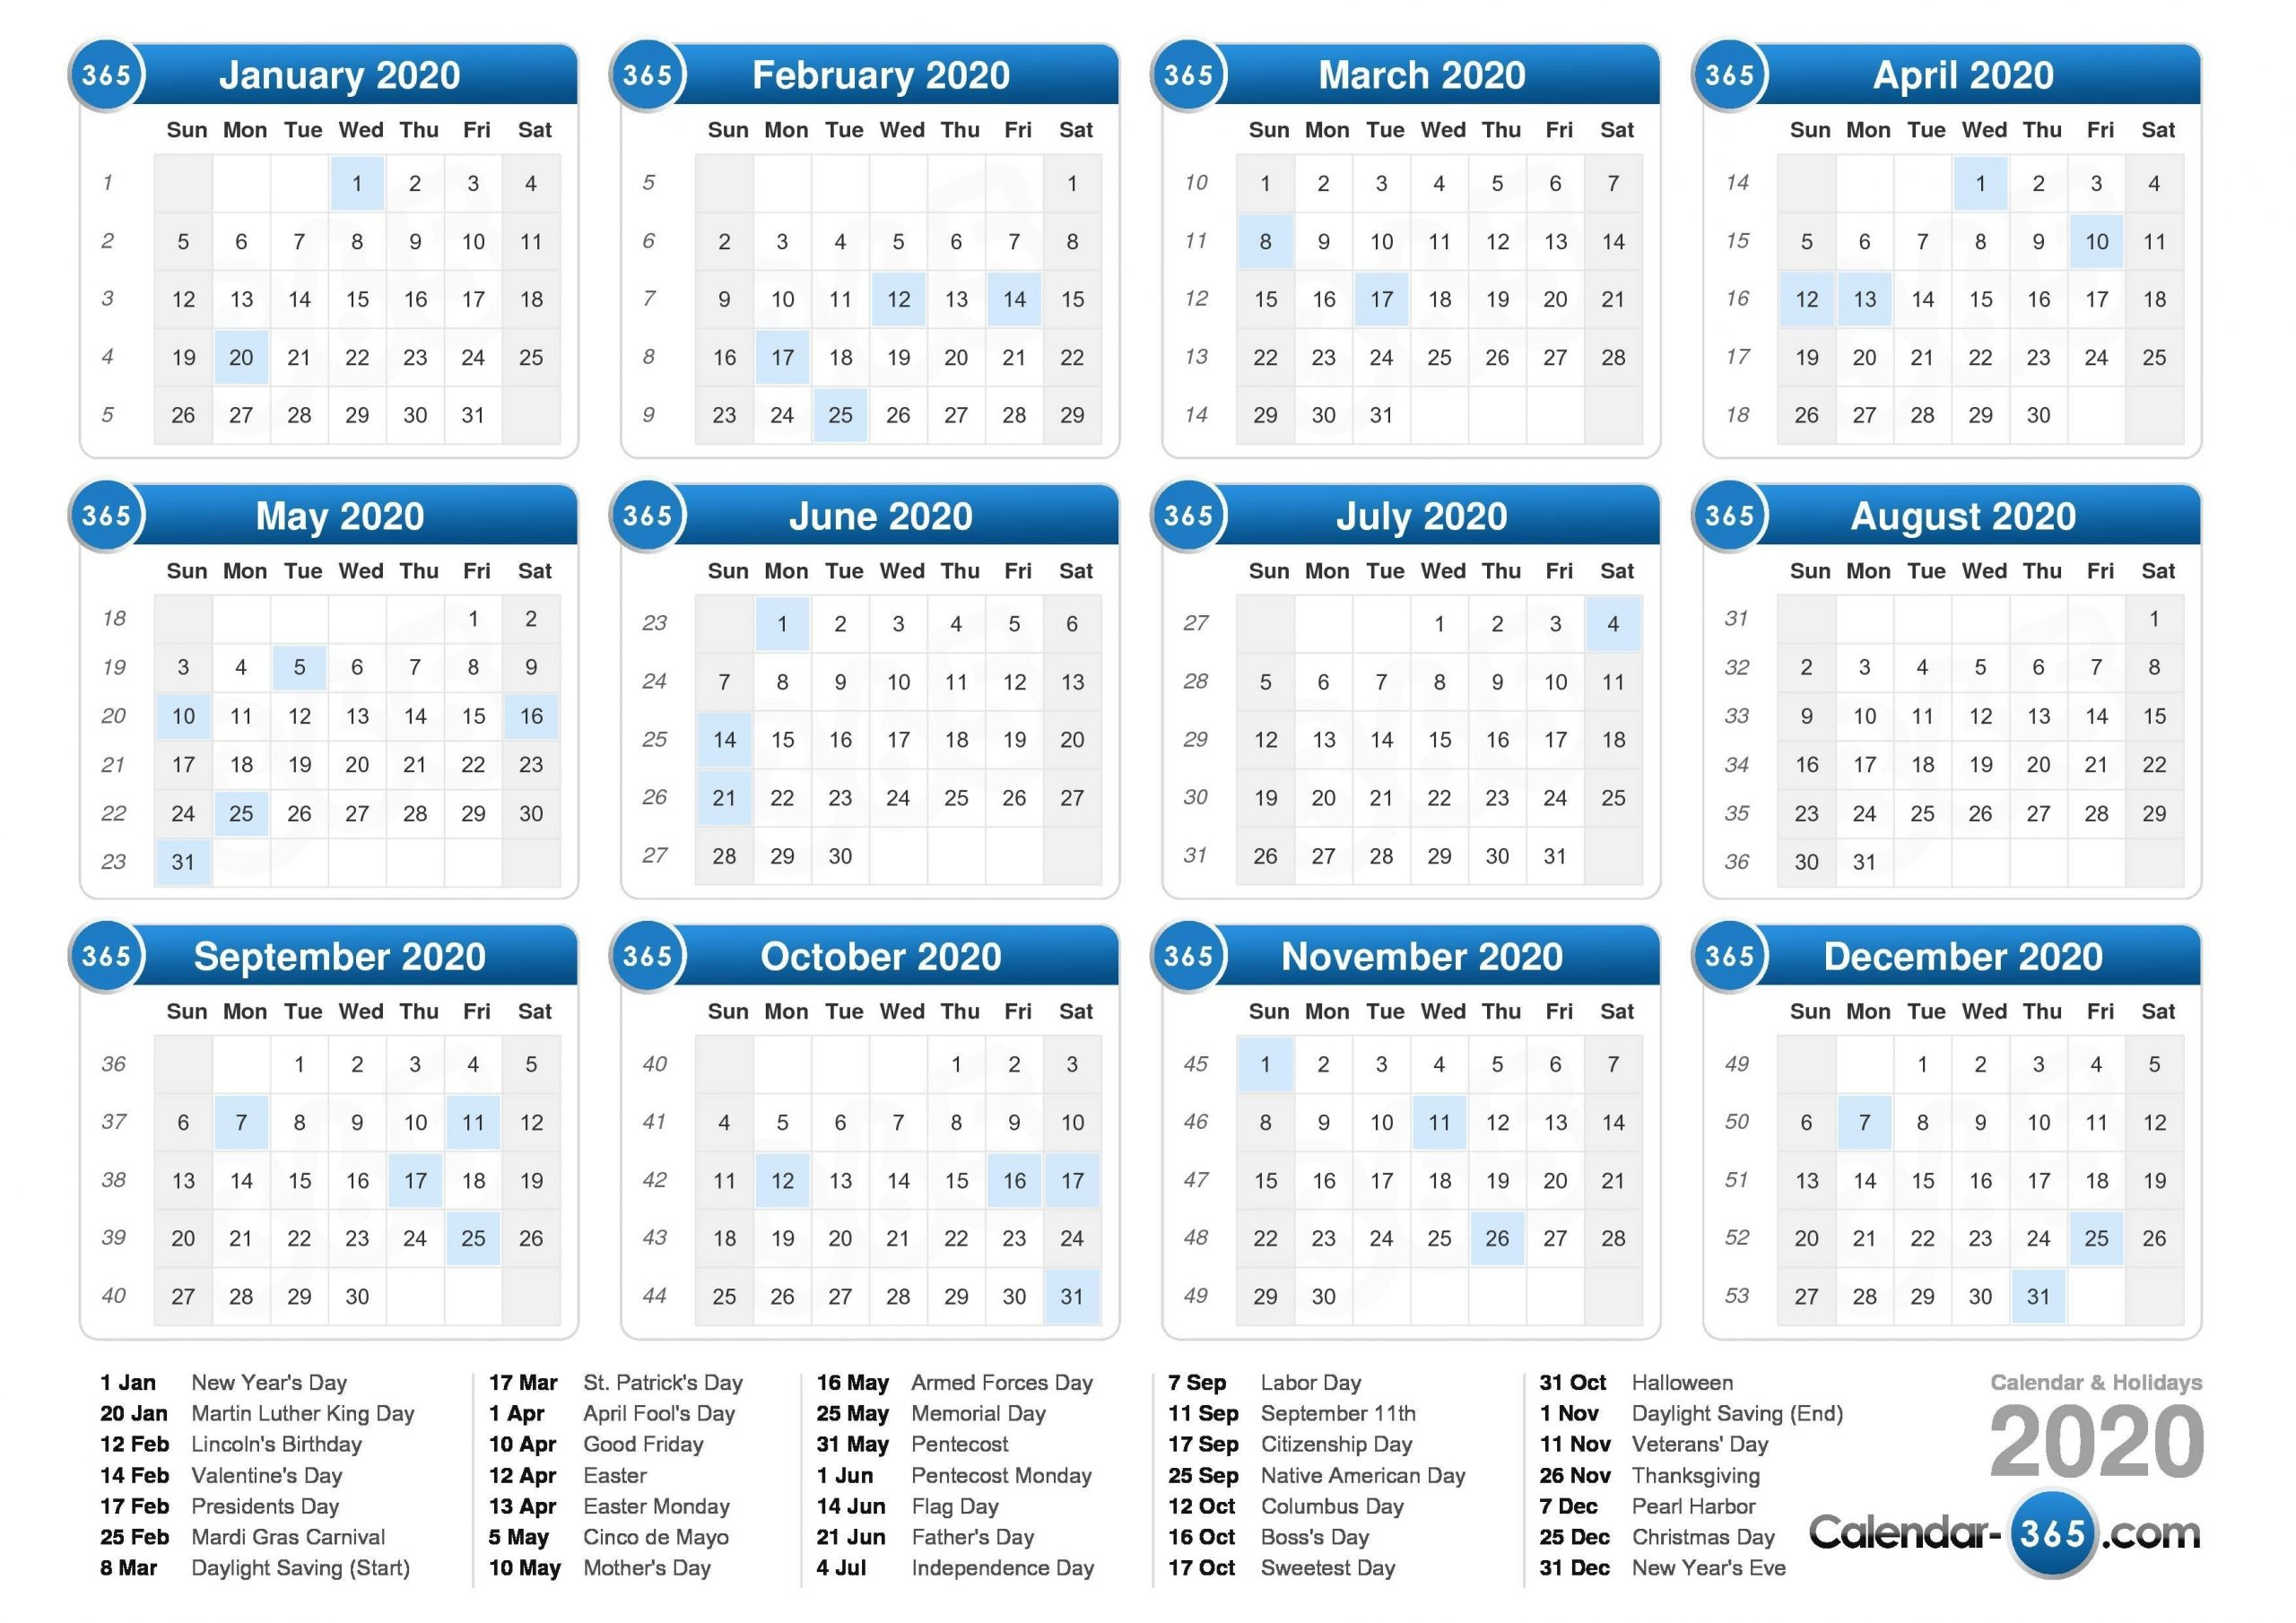 Collect Week 29 Fiscal Calendar 2021 What Dates